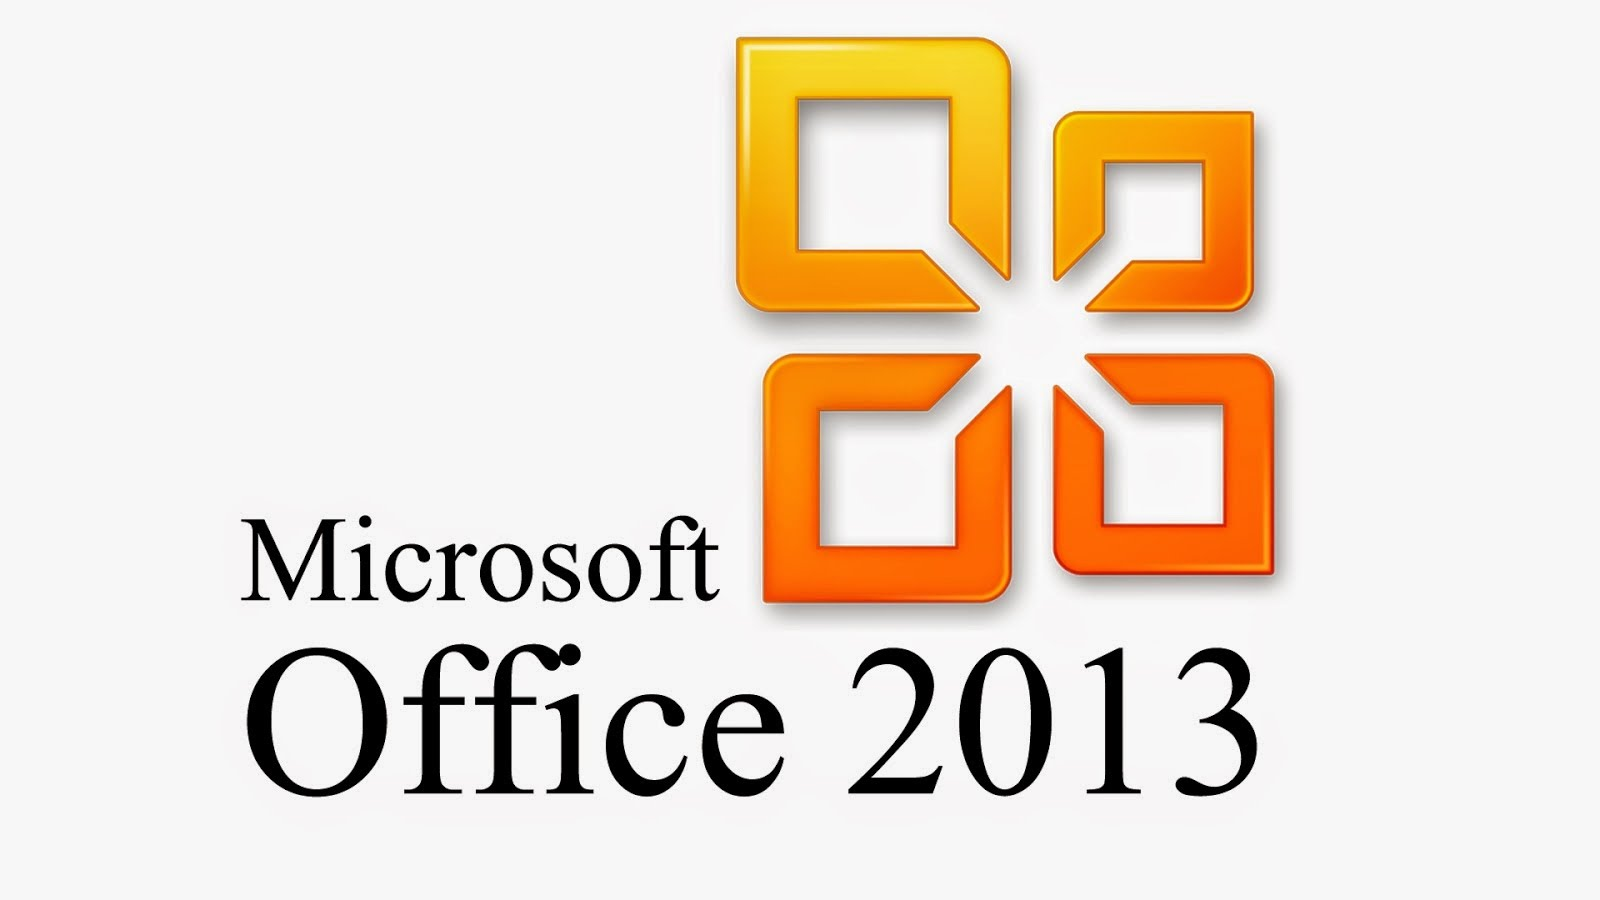 microsoft office 2015 free download for windows 7 32 bit